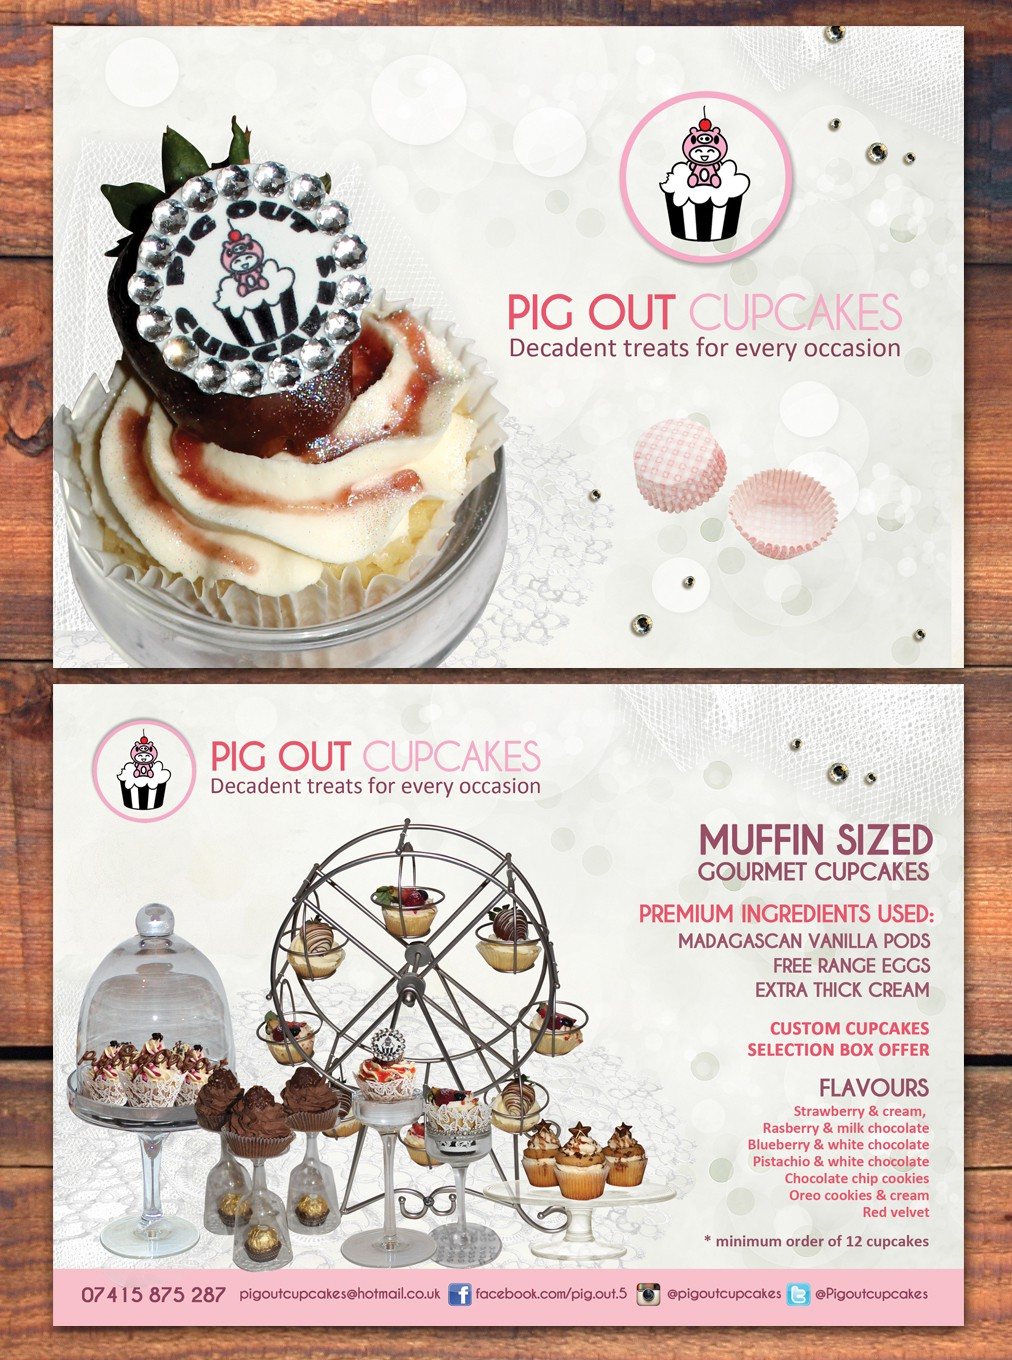 Help Pig Out Cupcakes with a new postcard or flyer